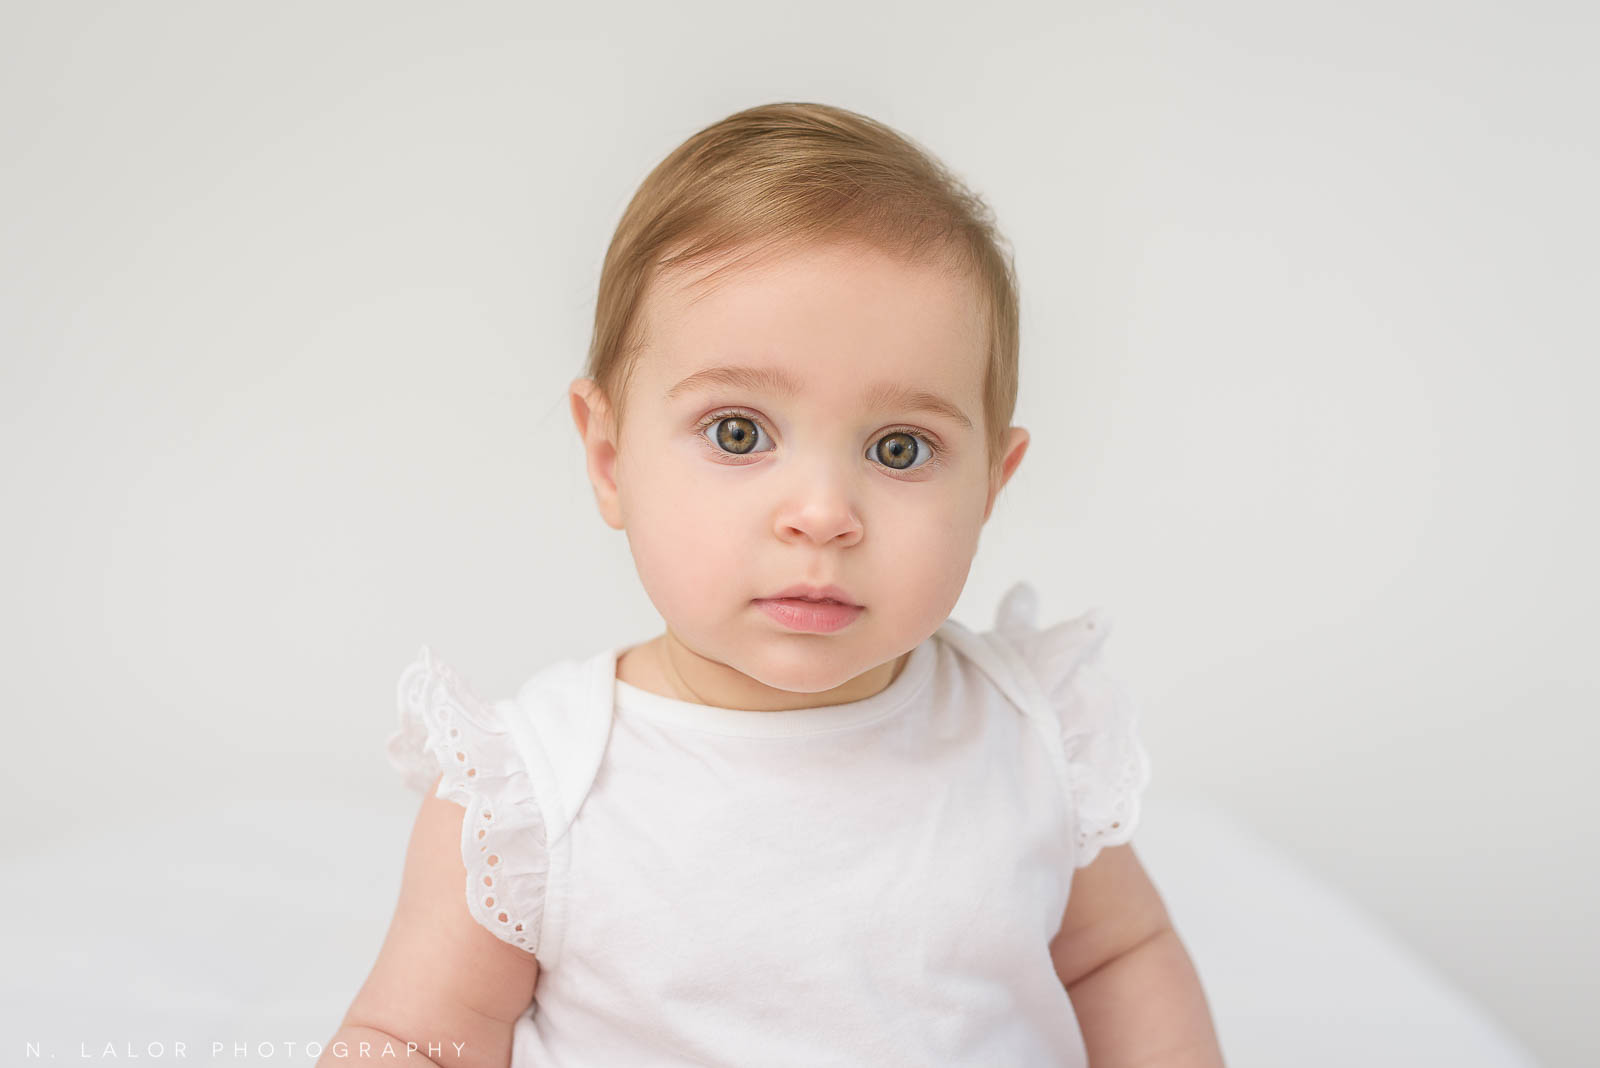 Image of a baby girl looking at the camera. Studio baby portrait by N. Lalor Photography in Greenwich Connecticut.